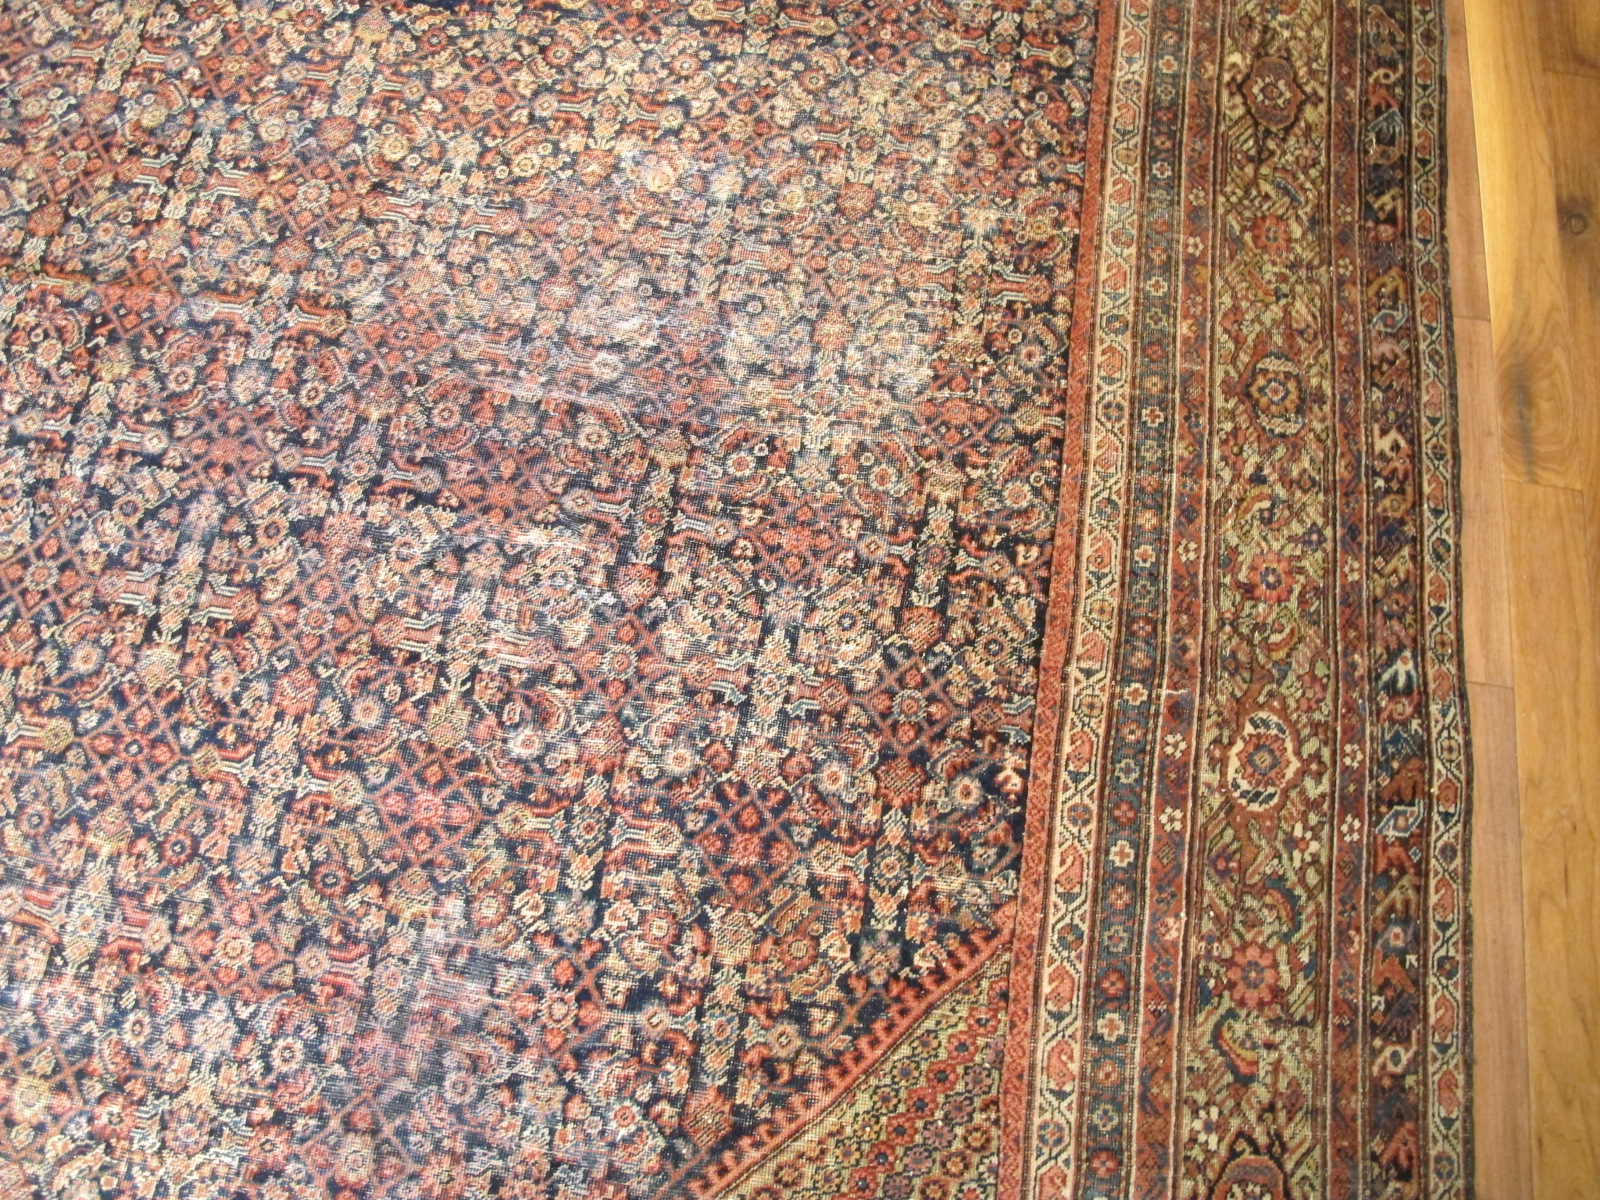 22329 antique persian mahal rug 12,3x16,7 (1)